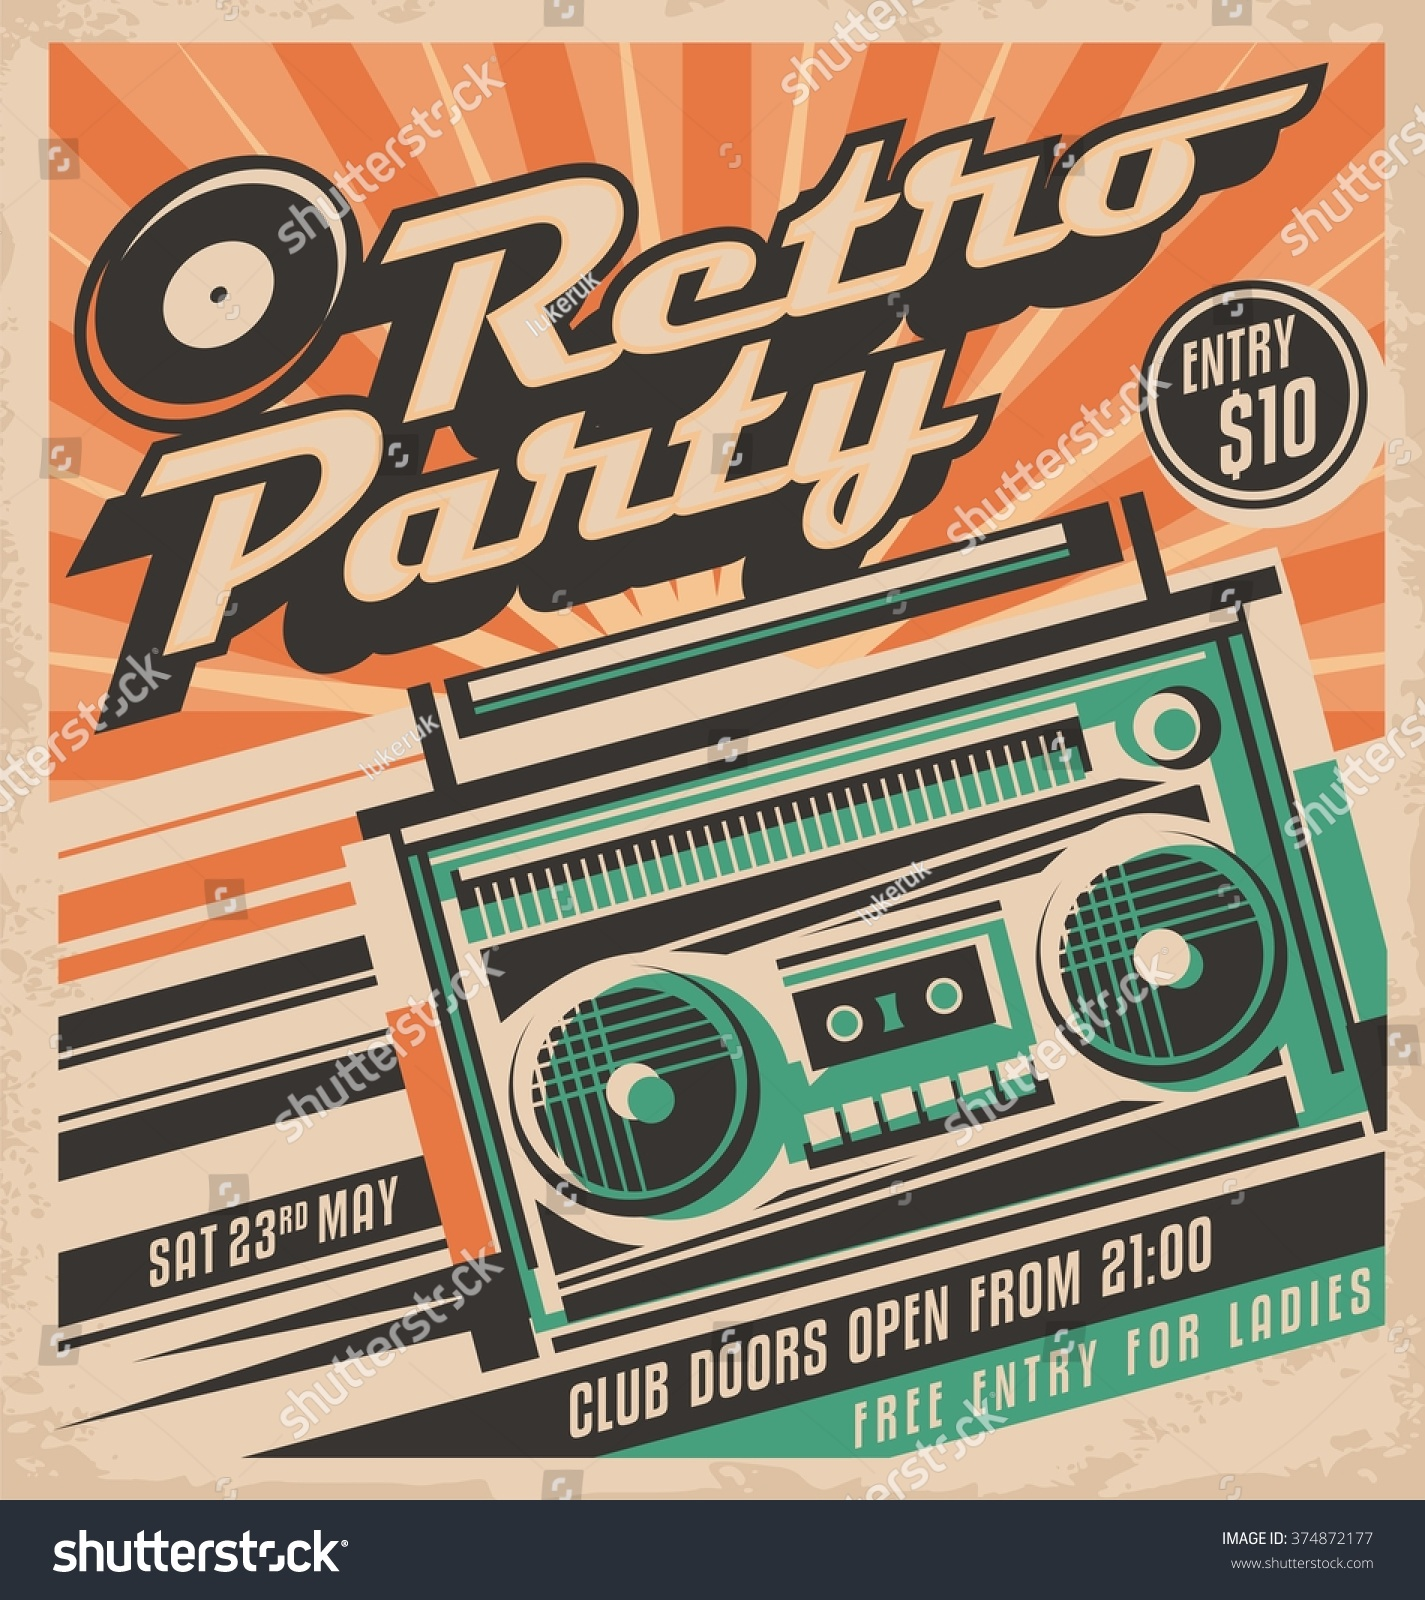 70s poster design template - Retro Party Vector Poster Design Concept Disco Music Event At Night Club Vintage Party